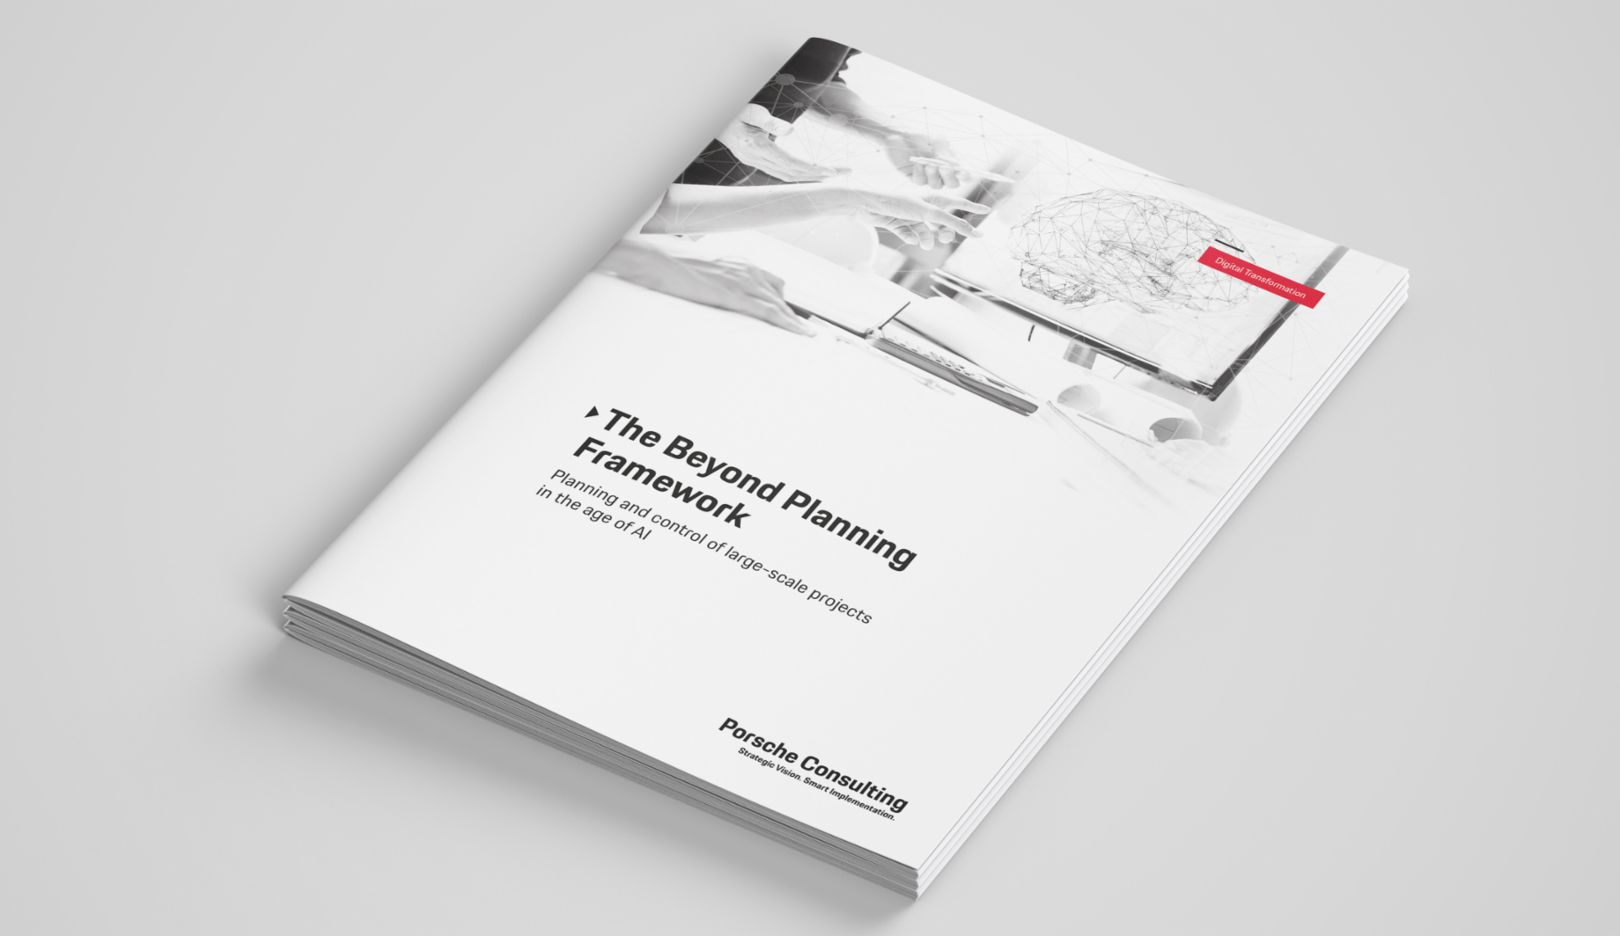 The Beyond Planning Framework, Whitepaper, 2020, Porsche Consulting GmbH